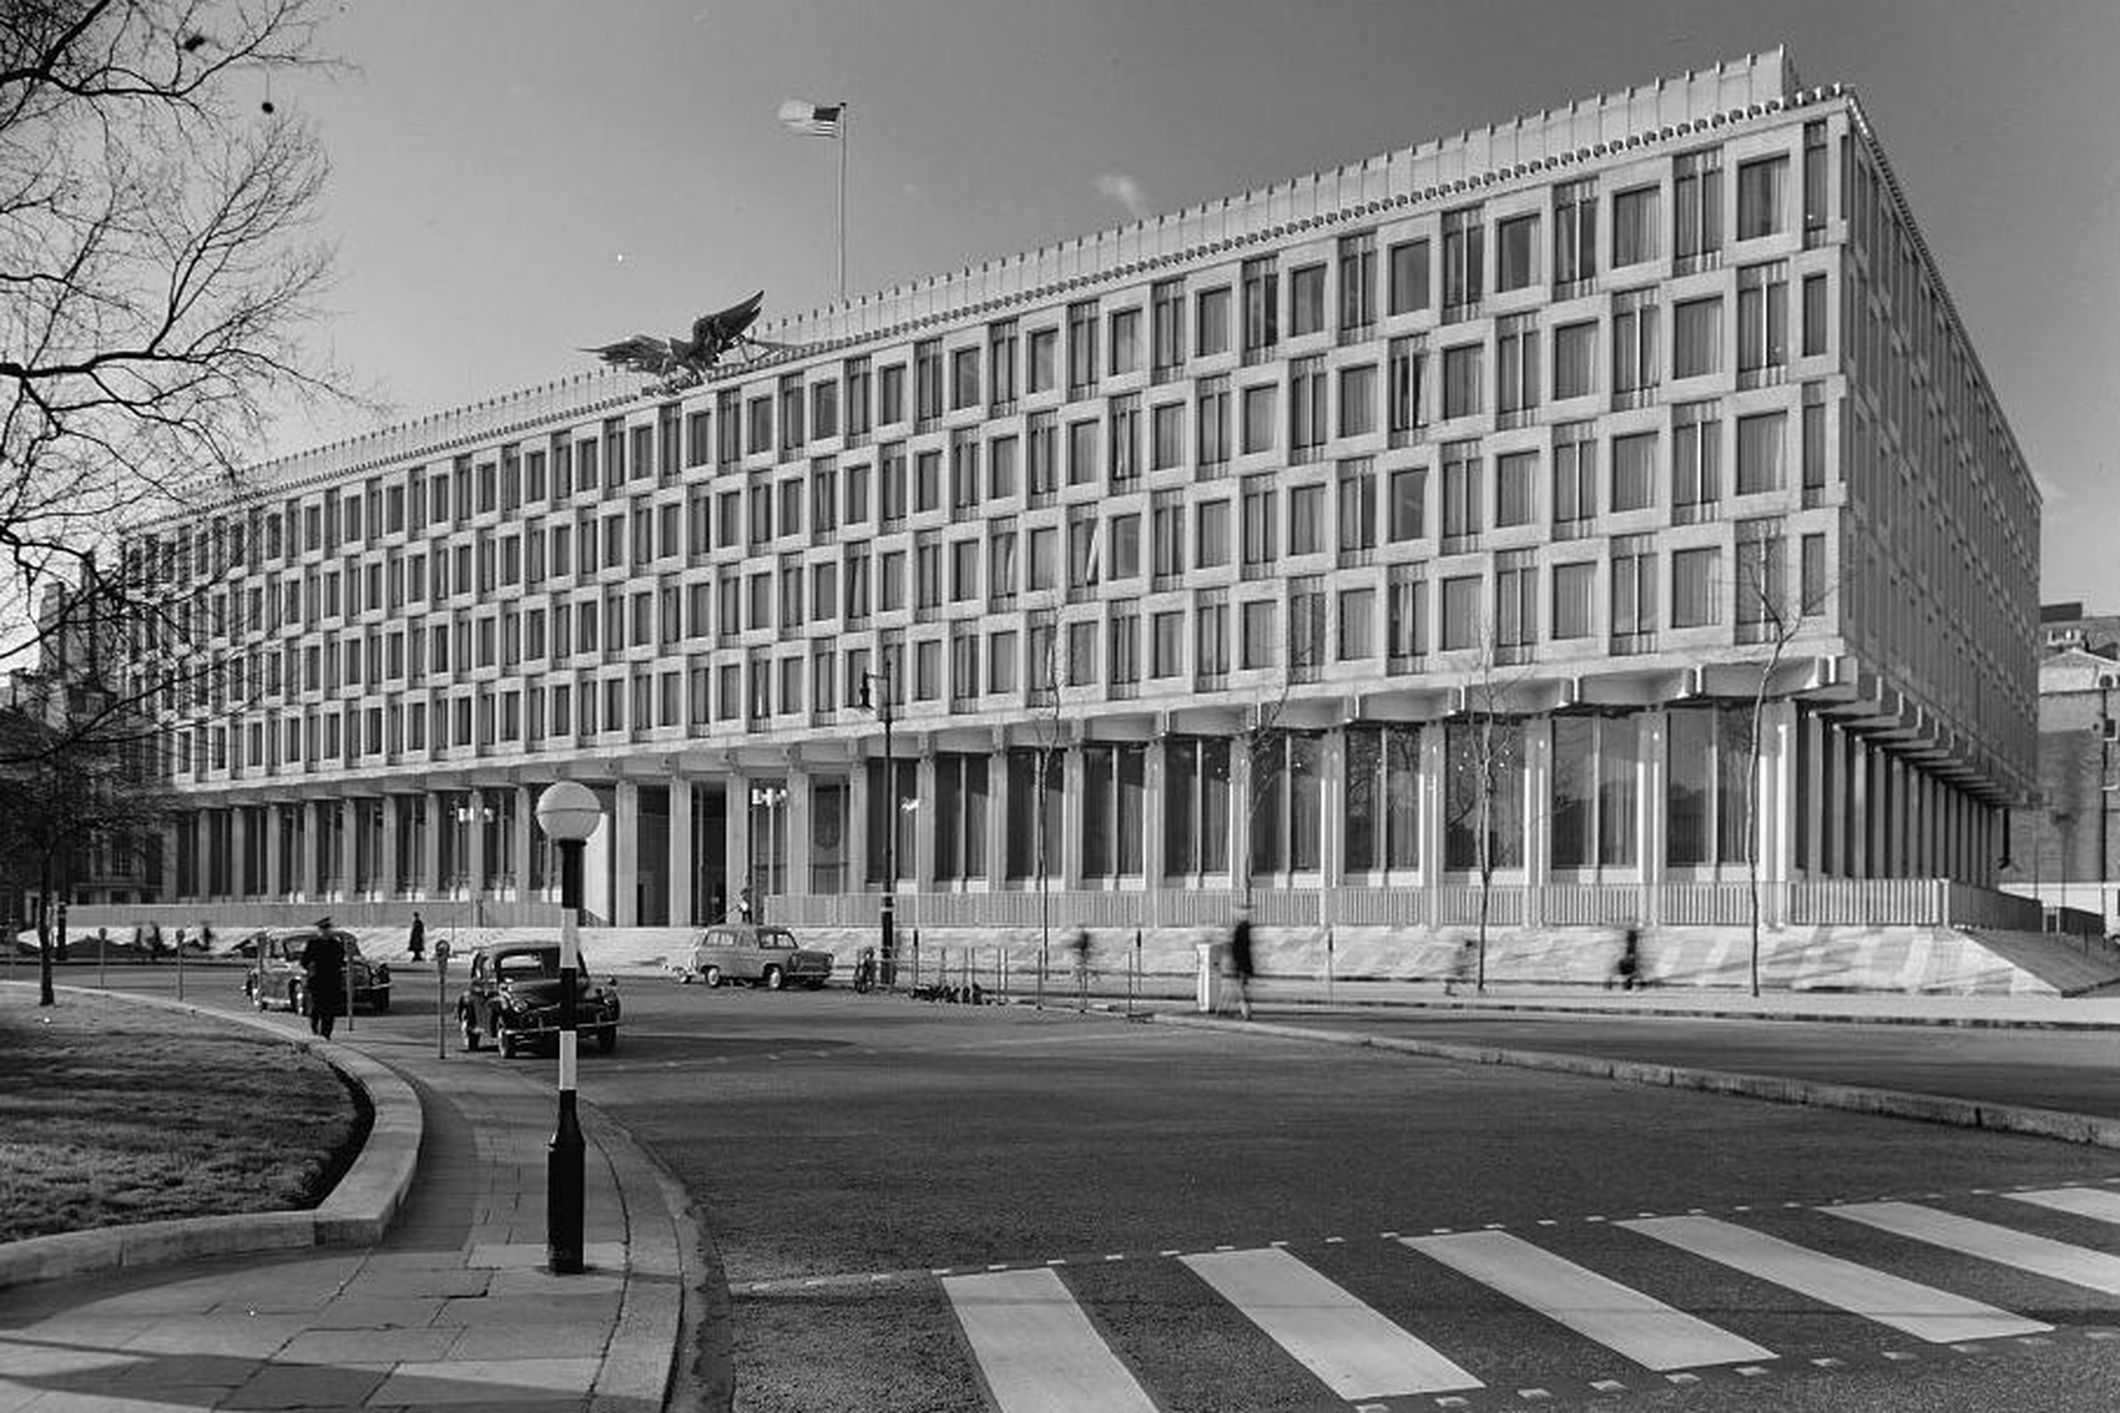 US Embassy - Eero Saarinen London, England (GB), 1960 as featured in Atlas of Brutalist Architecture